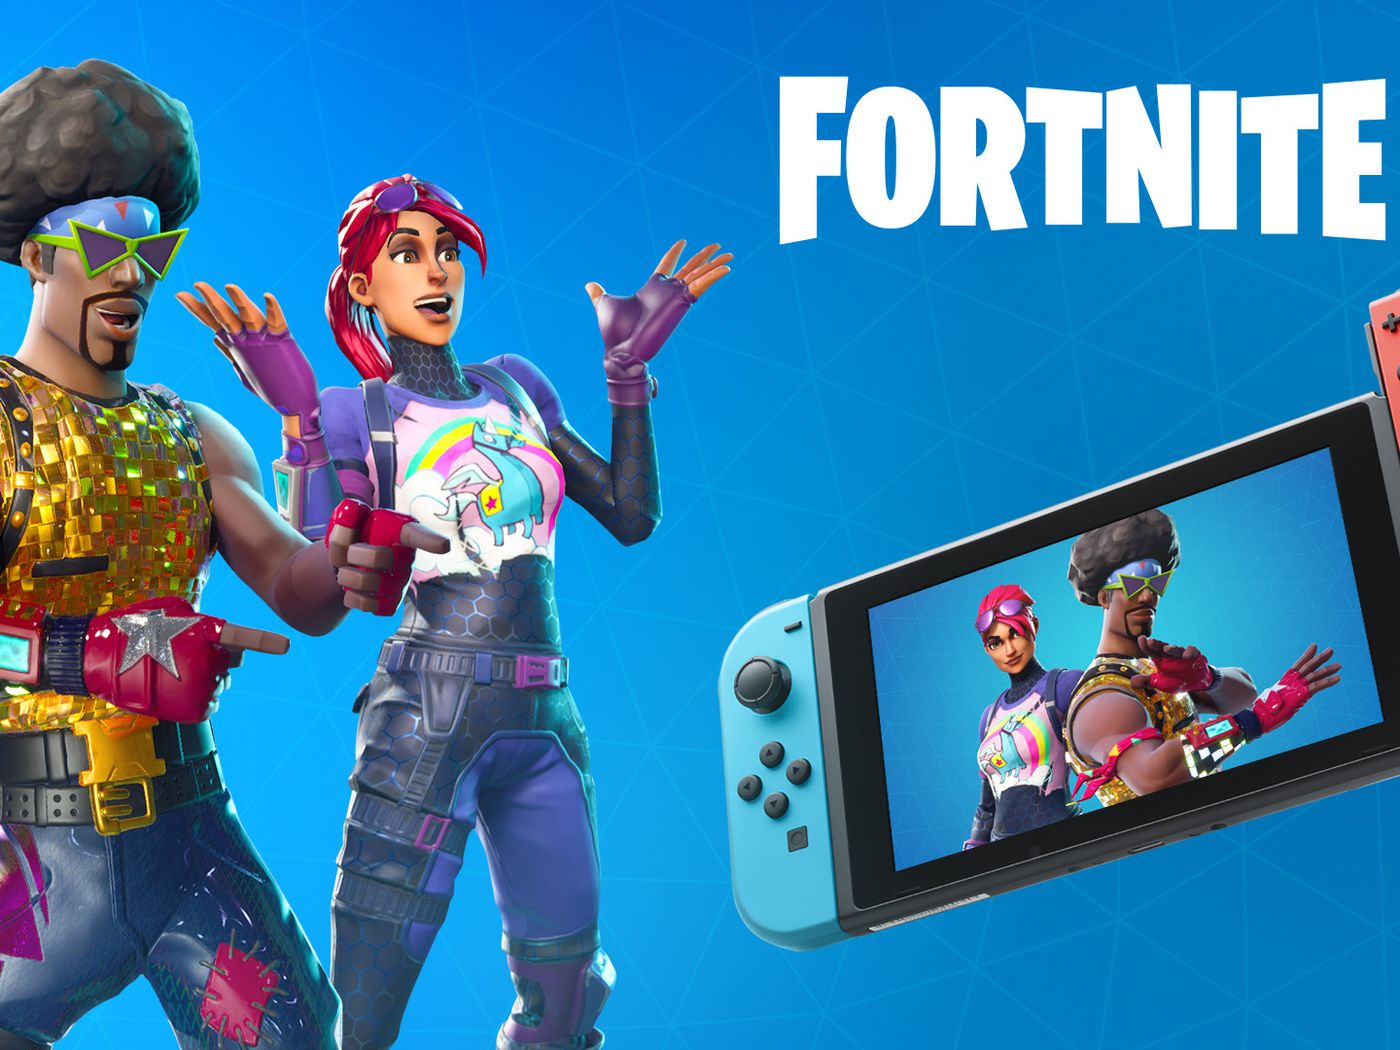 Can I Play Fortnite On Ps4 Sony Enabling Fortnite Cross Play For Ps4 Against Xbox And Switch The Verge